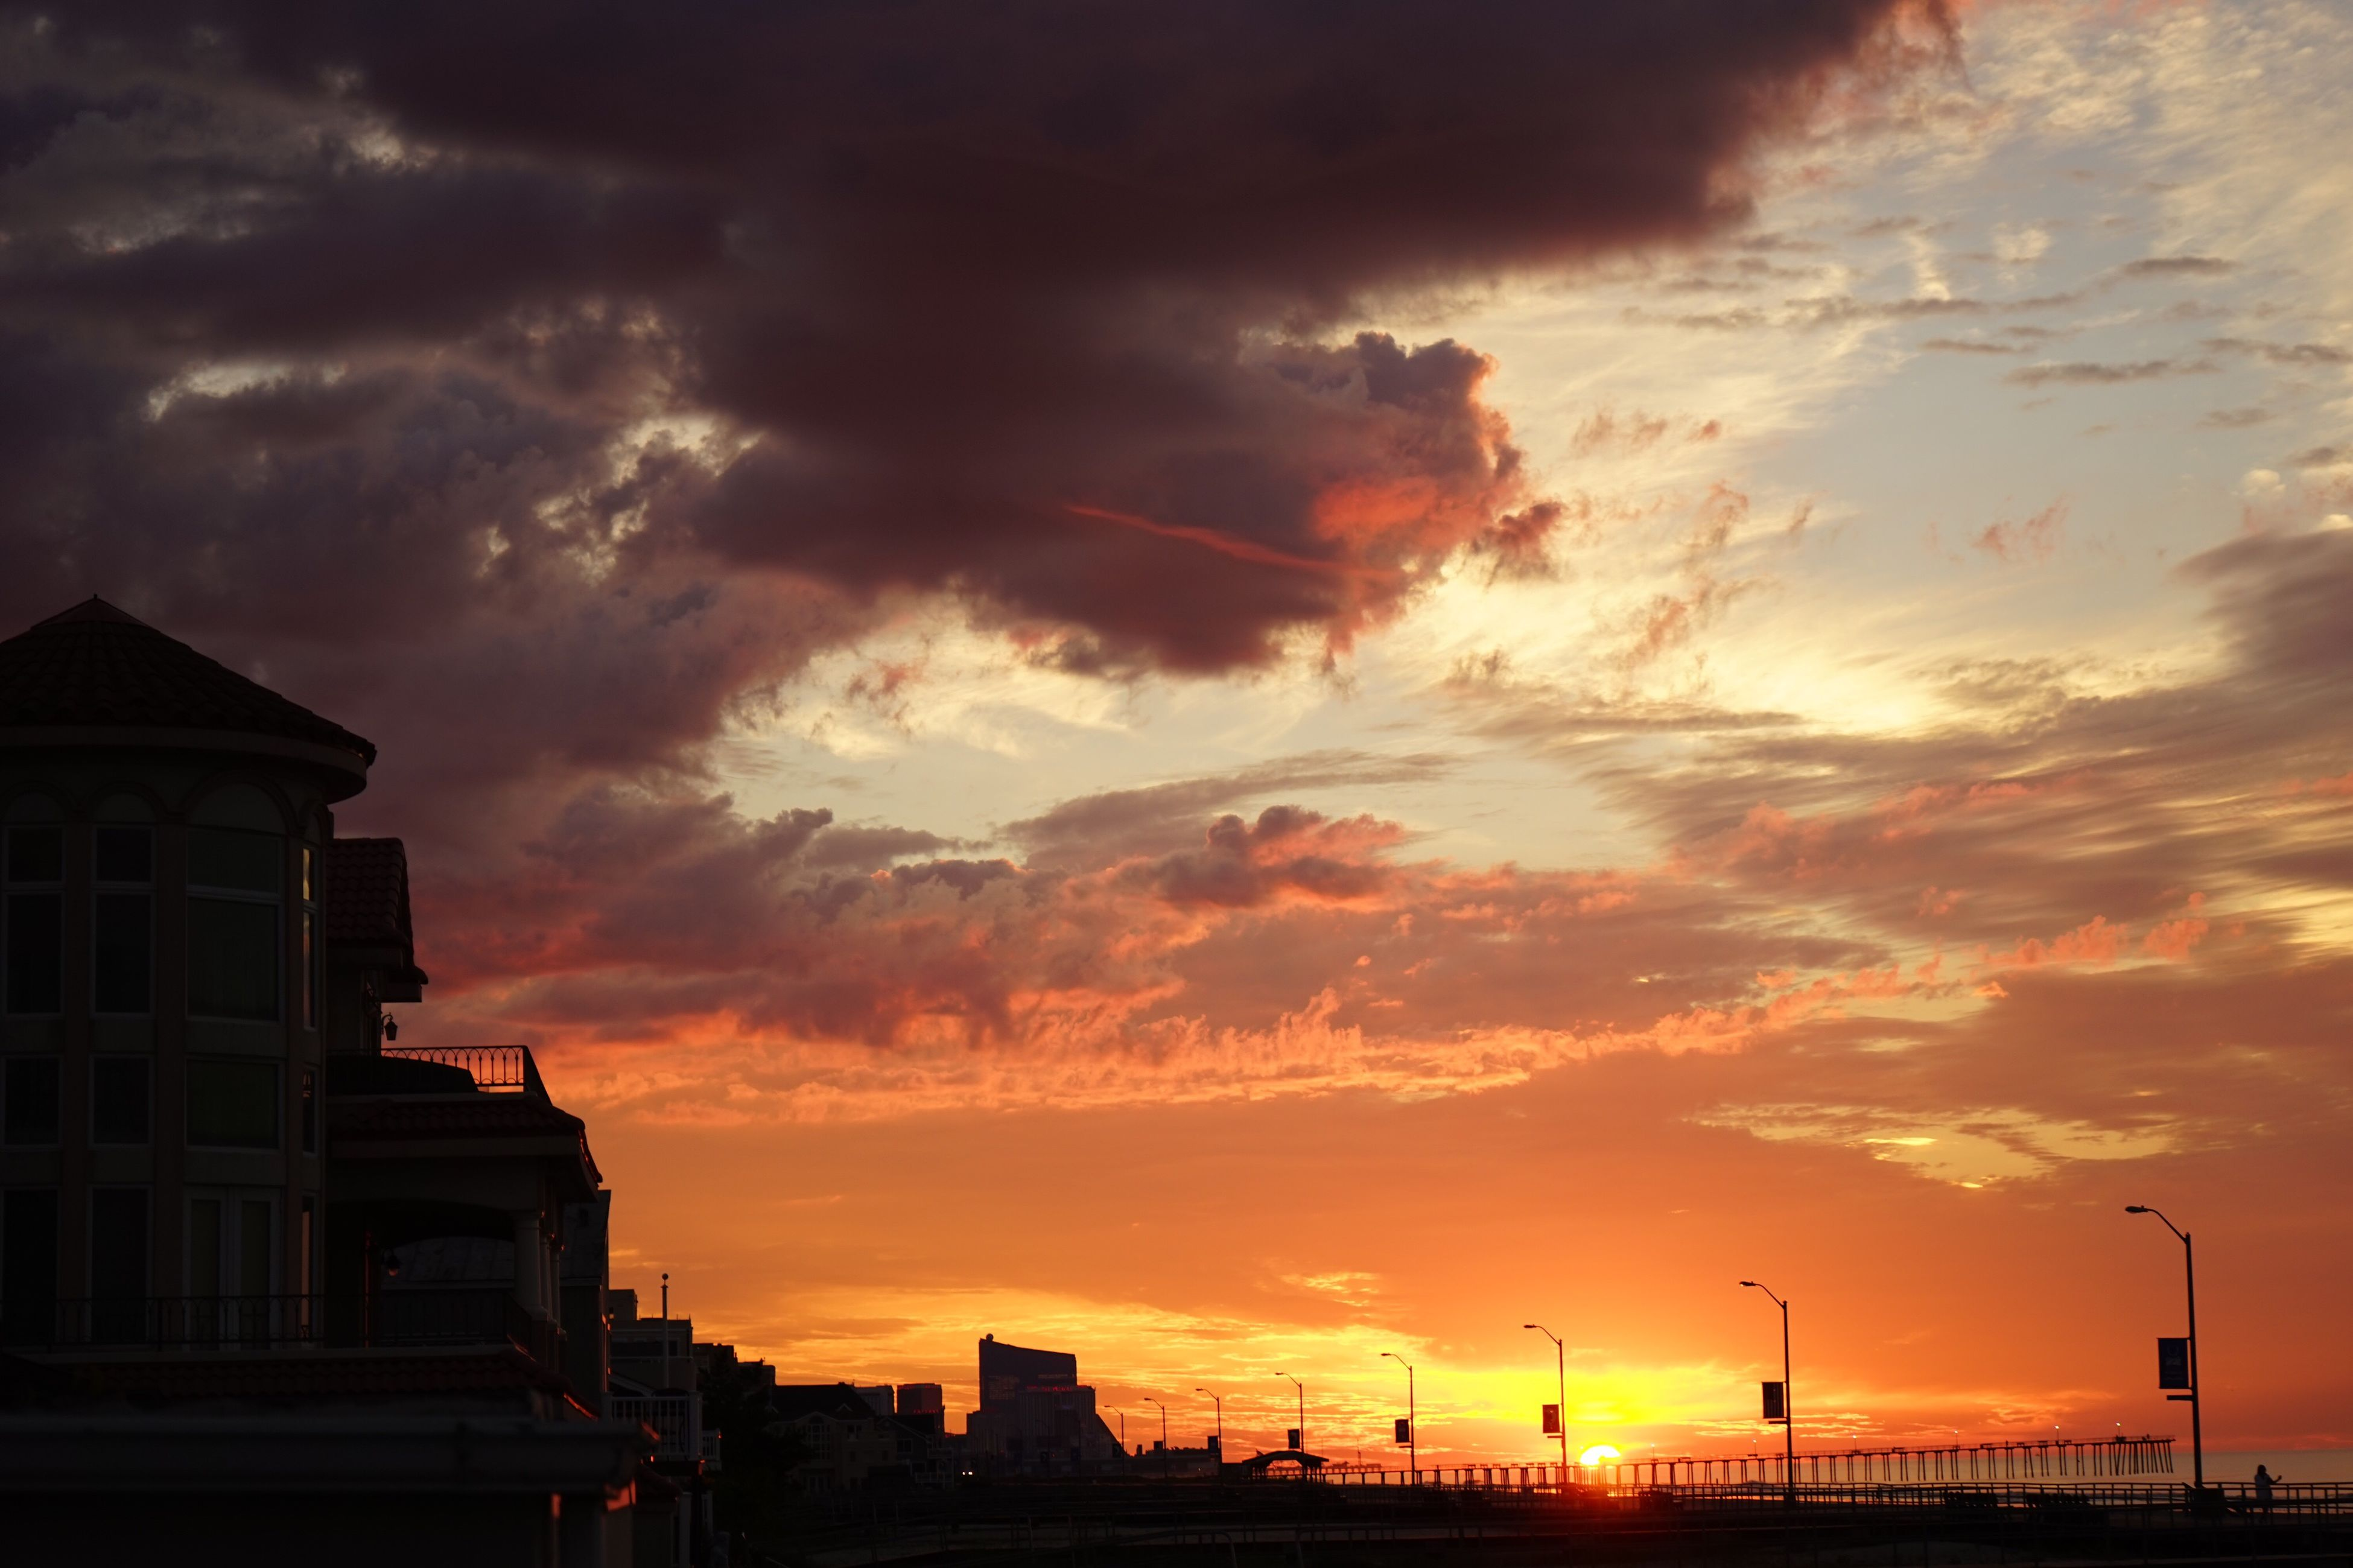 sunset, orange color, architecture, building exterior, built structure, cloud, sky, cloud - sky, sun, scenics, majestic, beauty in nature, tranquility, tranquil scene, nature, dramatic sky, outdoors, storm cloud, cloudy, cloudscape, outline, no people, atmospheric mood, atmosphere, romantic sky, high section, moody sky